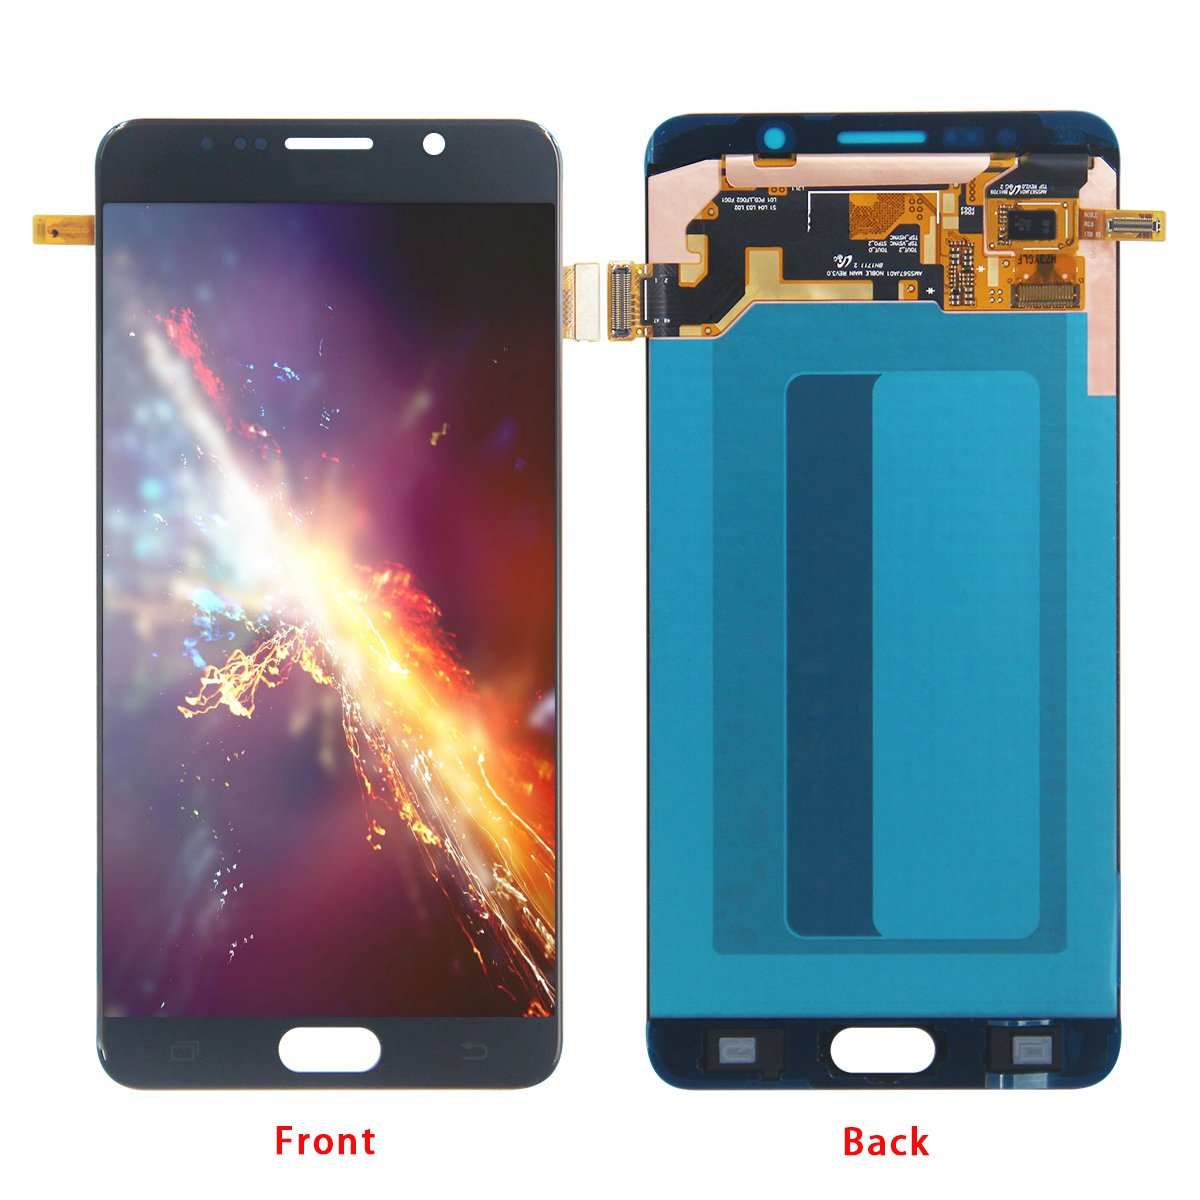 HJSDtech LCD Touch Glass Screen Display Digitizer Assembly Replacement for Samsung Galaxy Note 5 N920 N920f N920t N920a ( Black) by HJSDtech (Image #1)